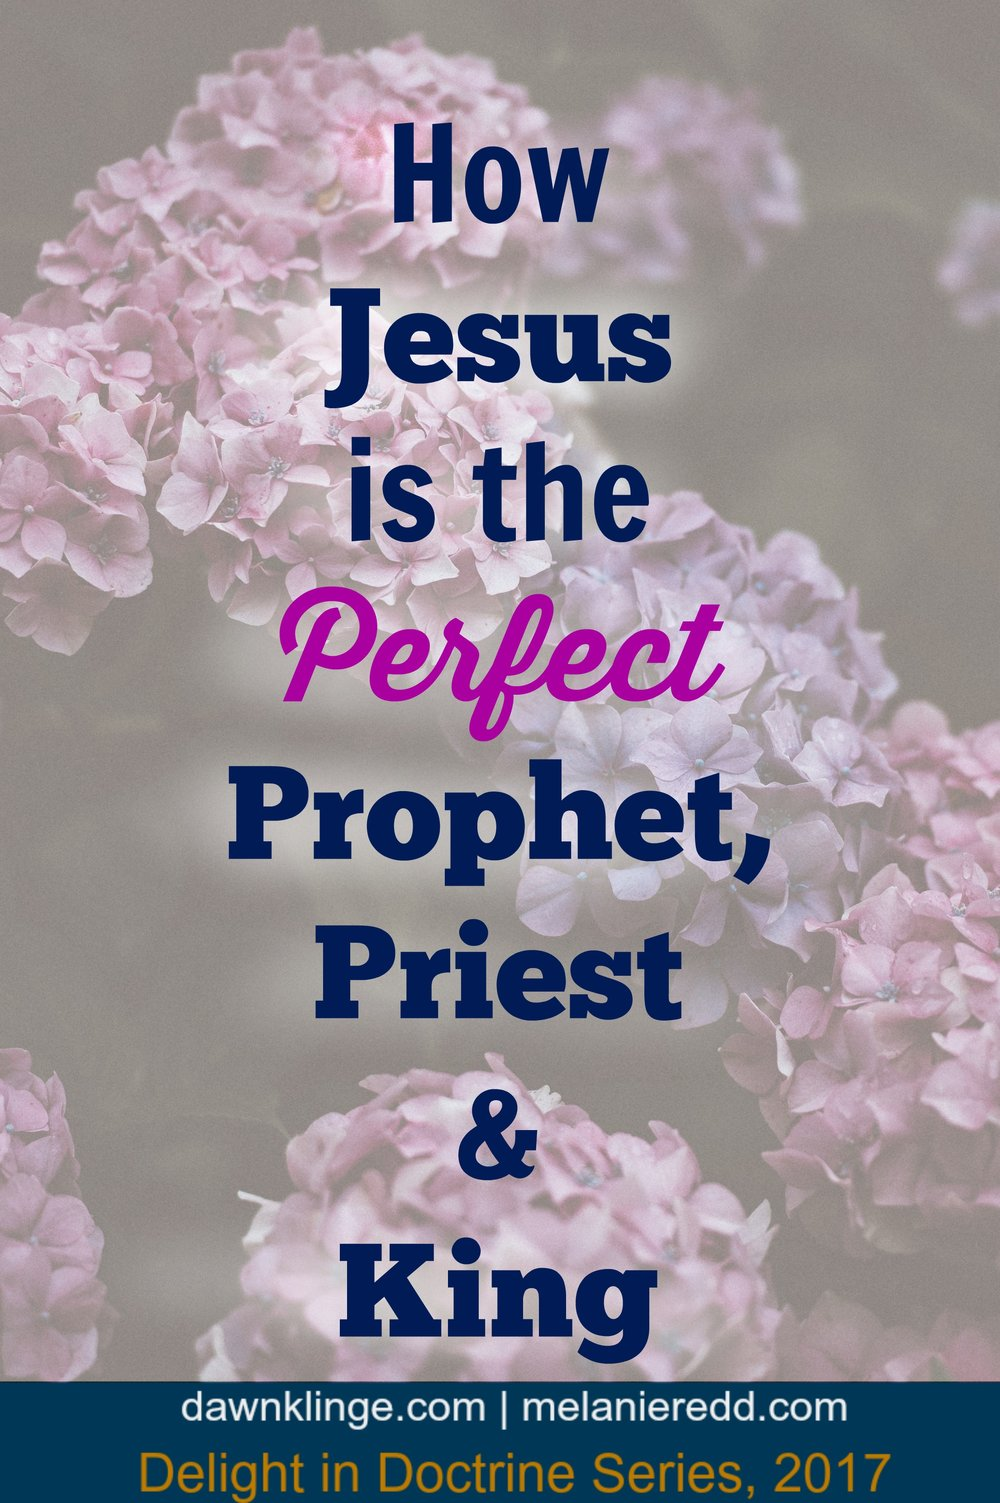 How Jesus is the perfect prophet, priest, and king